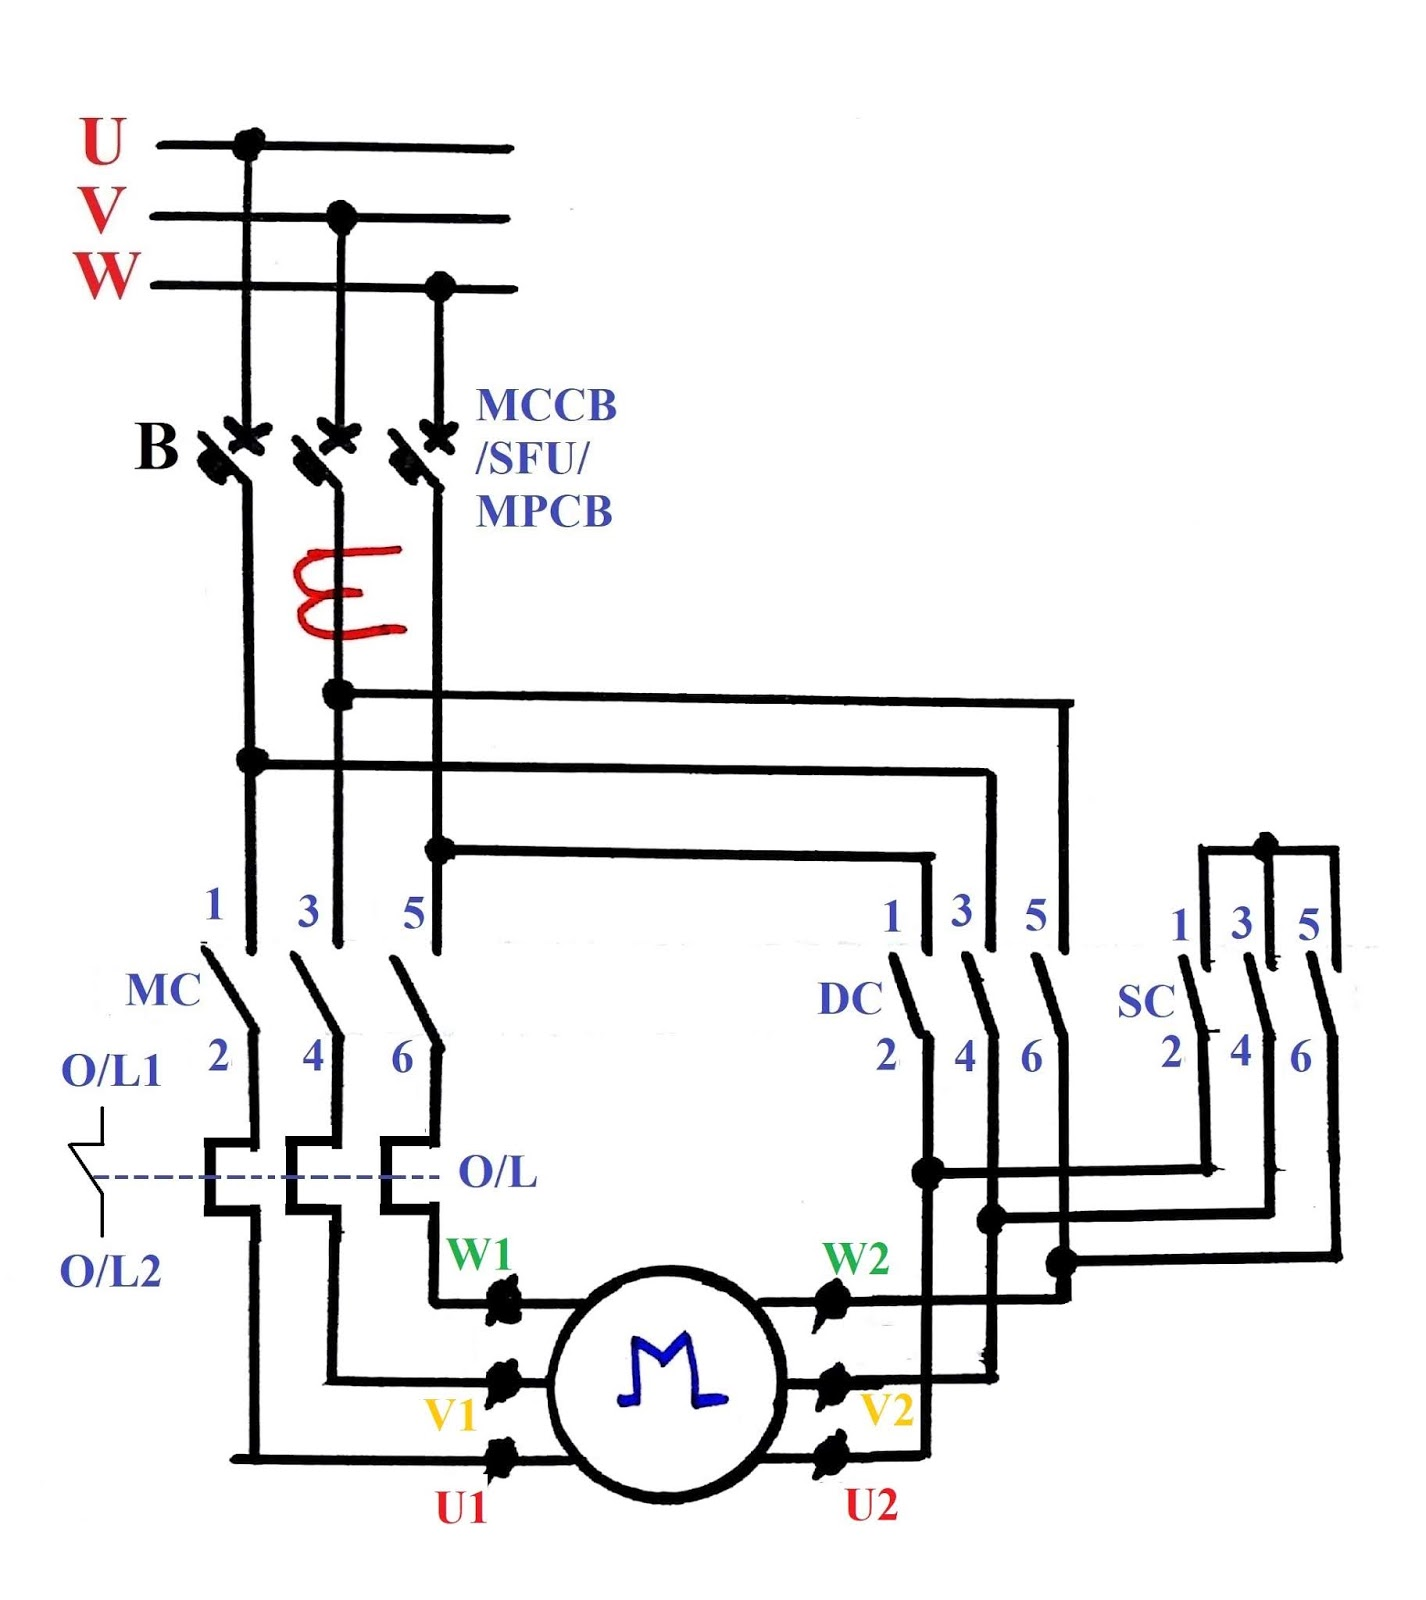 [DIAGRAM] Motor Star Delta Connection Diagram FULL Version